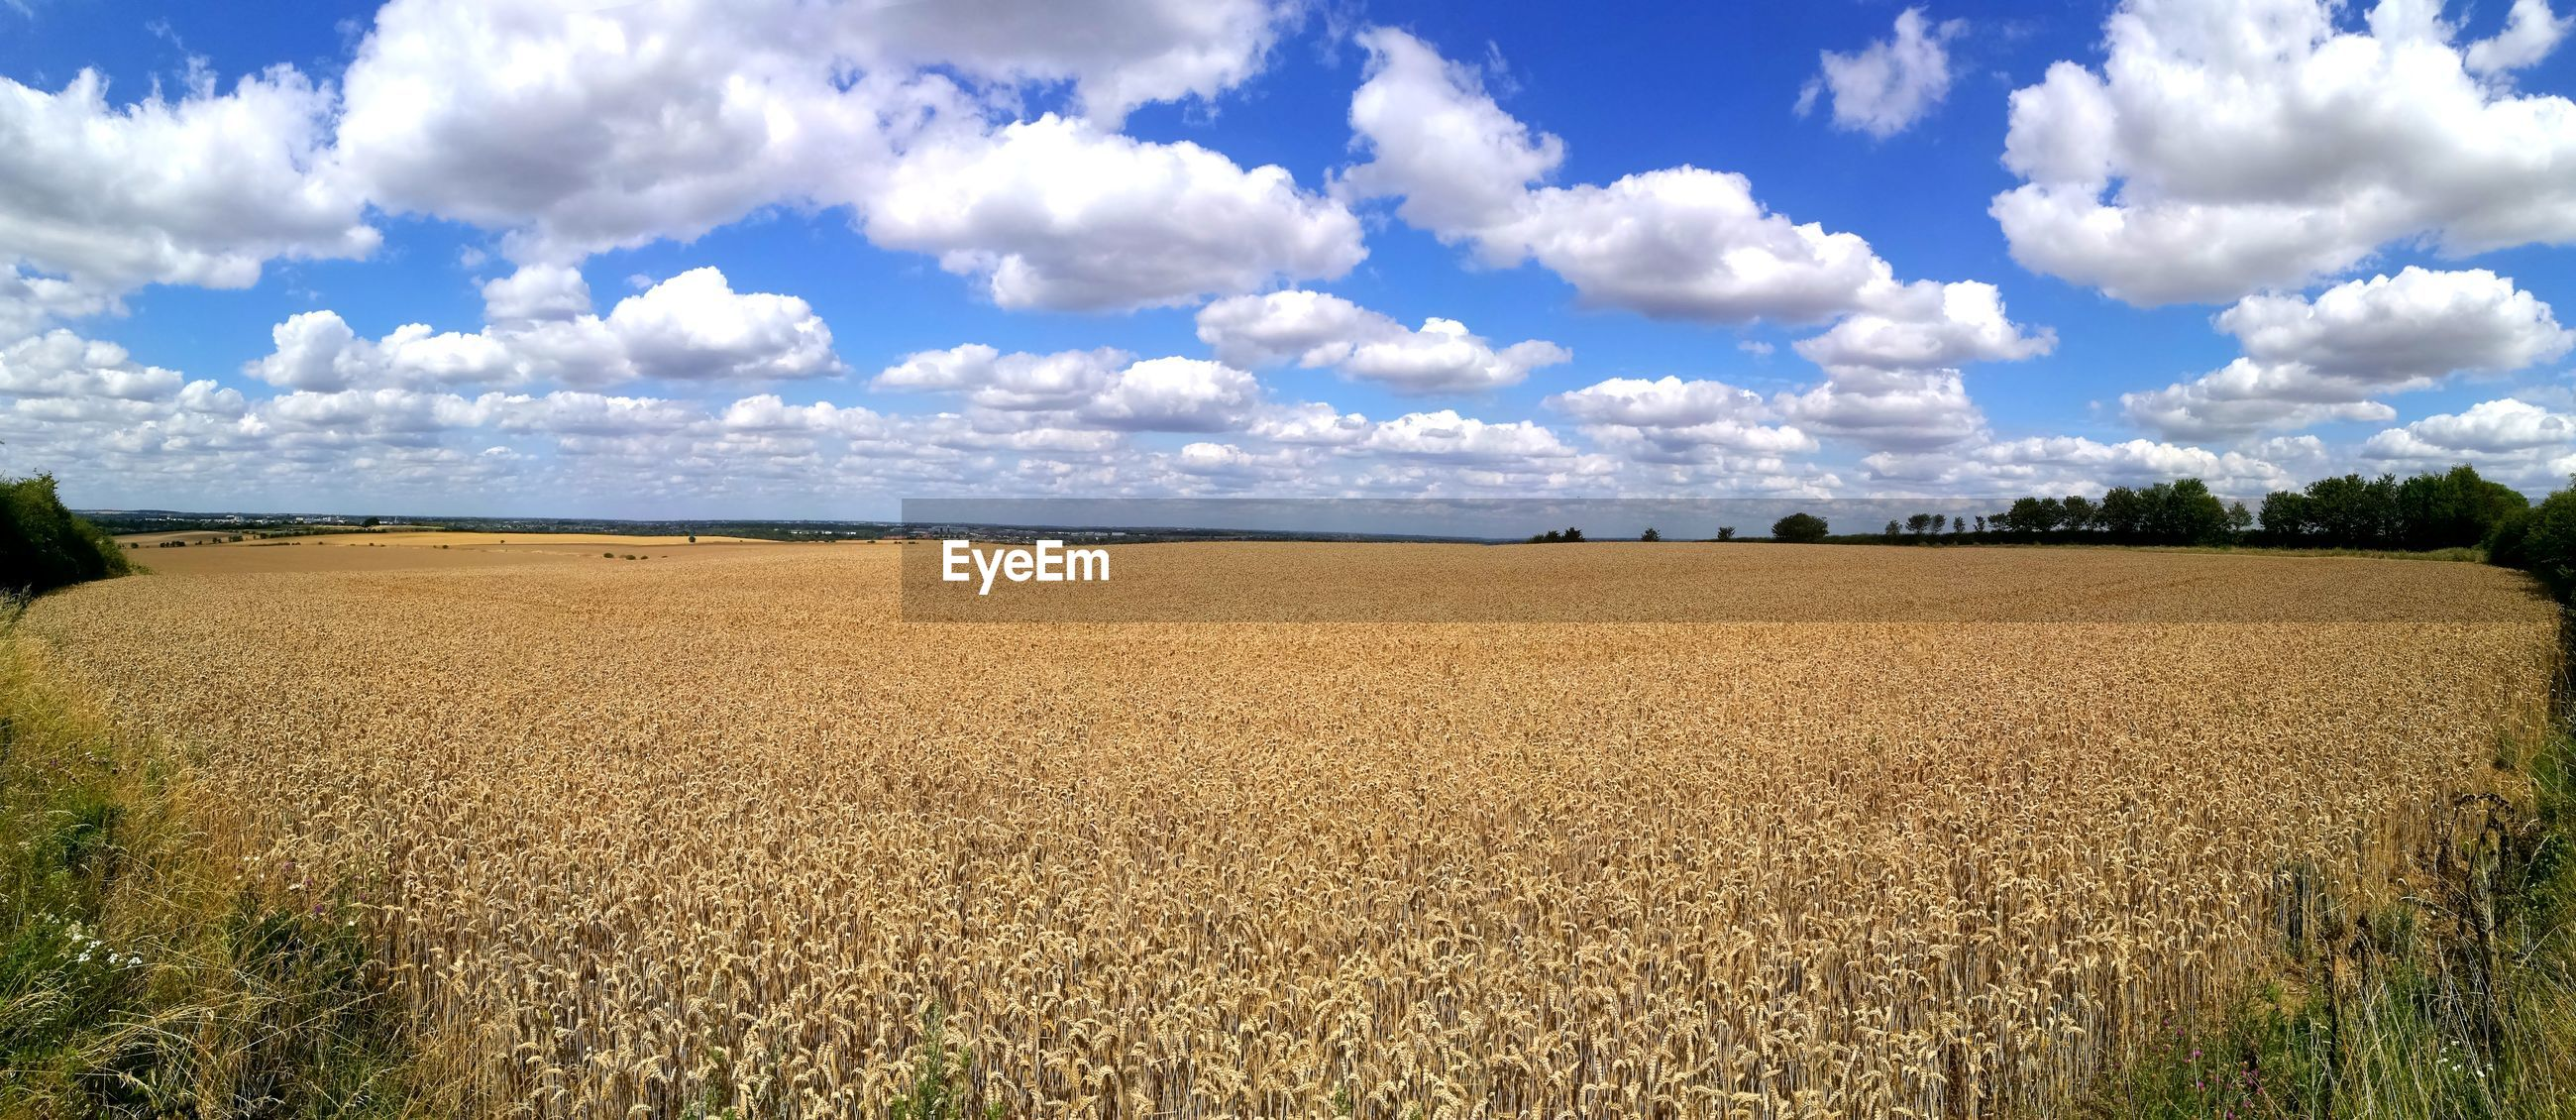 VIEW OF AGRICULTURAL FIELD AGAINST SKY